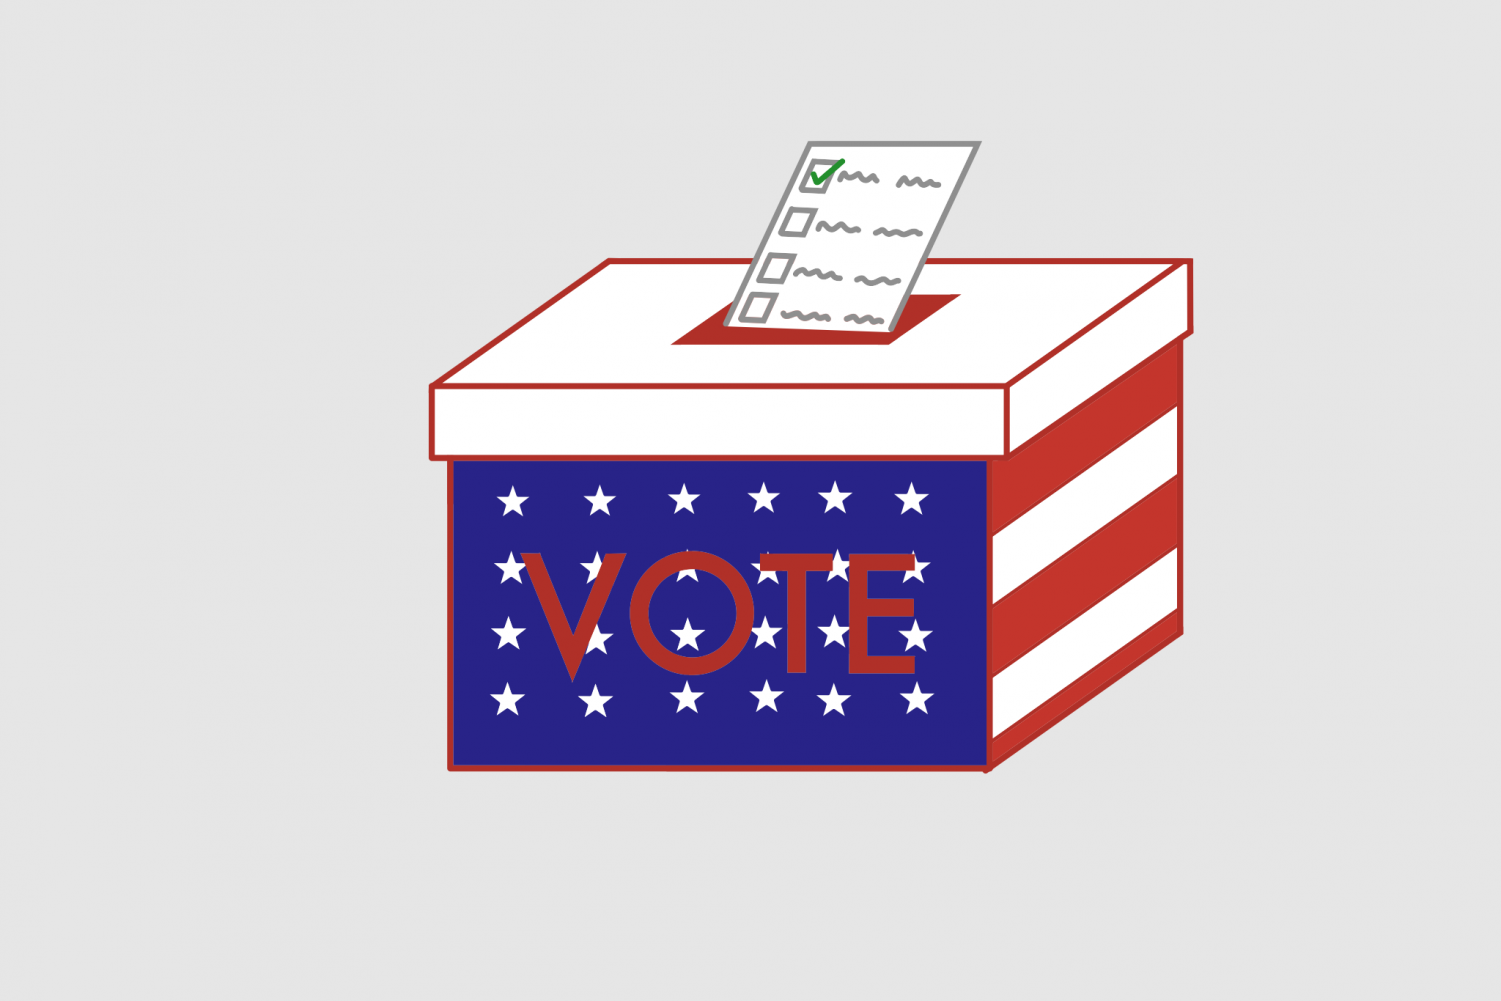 Read up on the current standings of the 2020 presidential election.